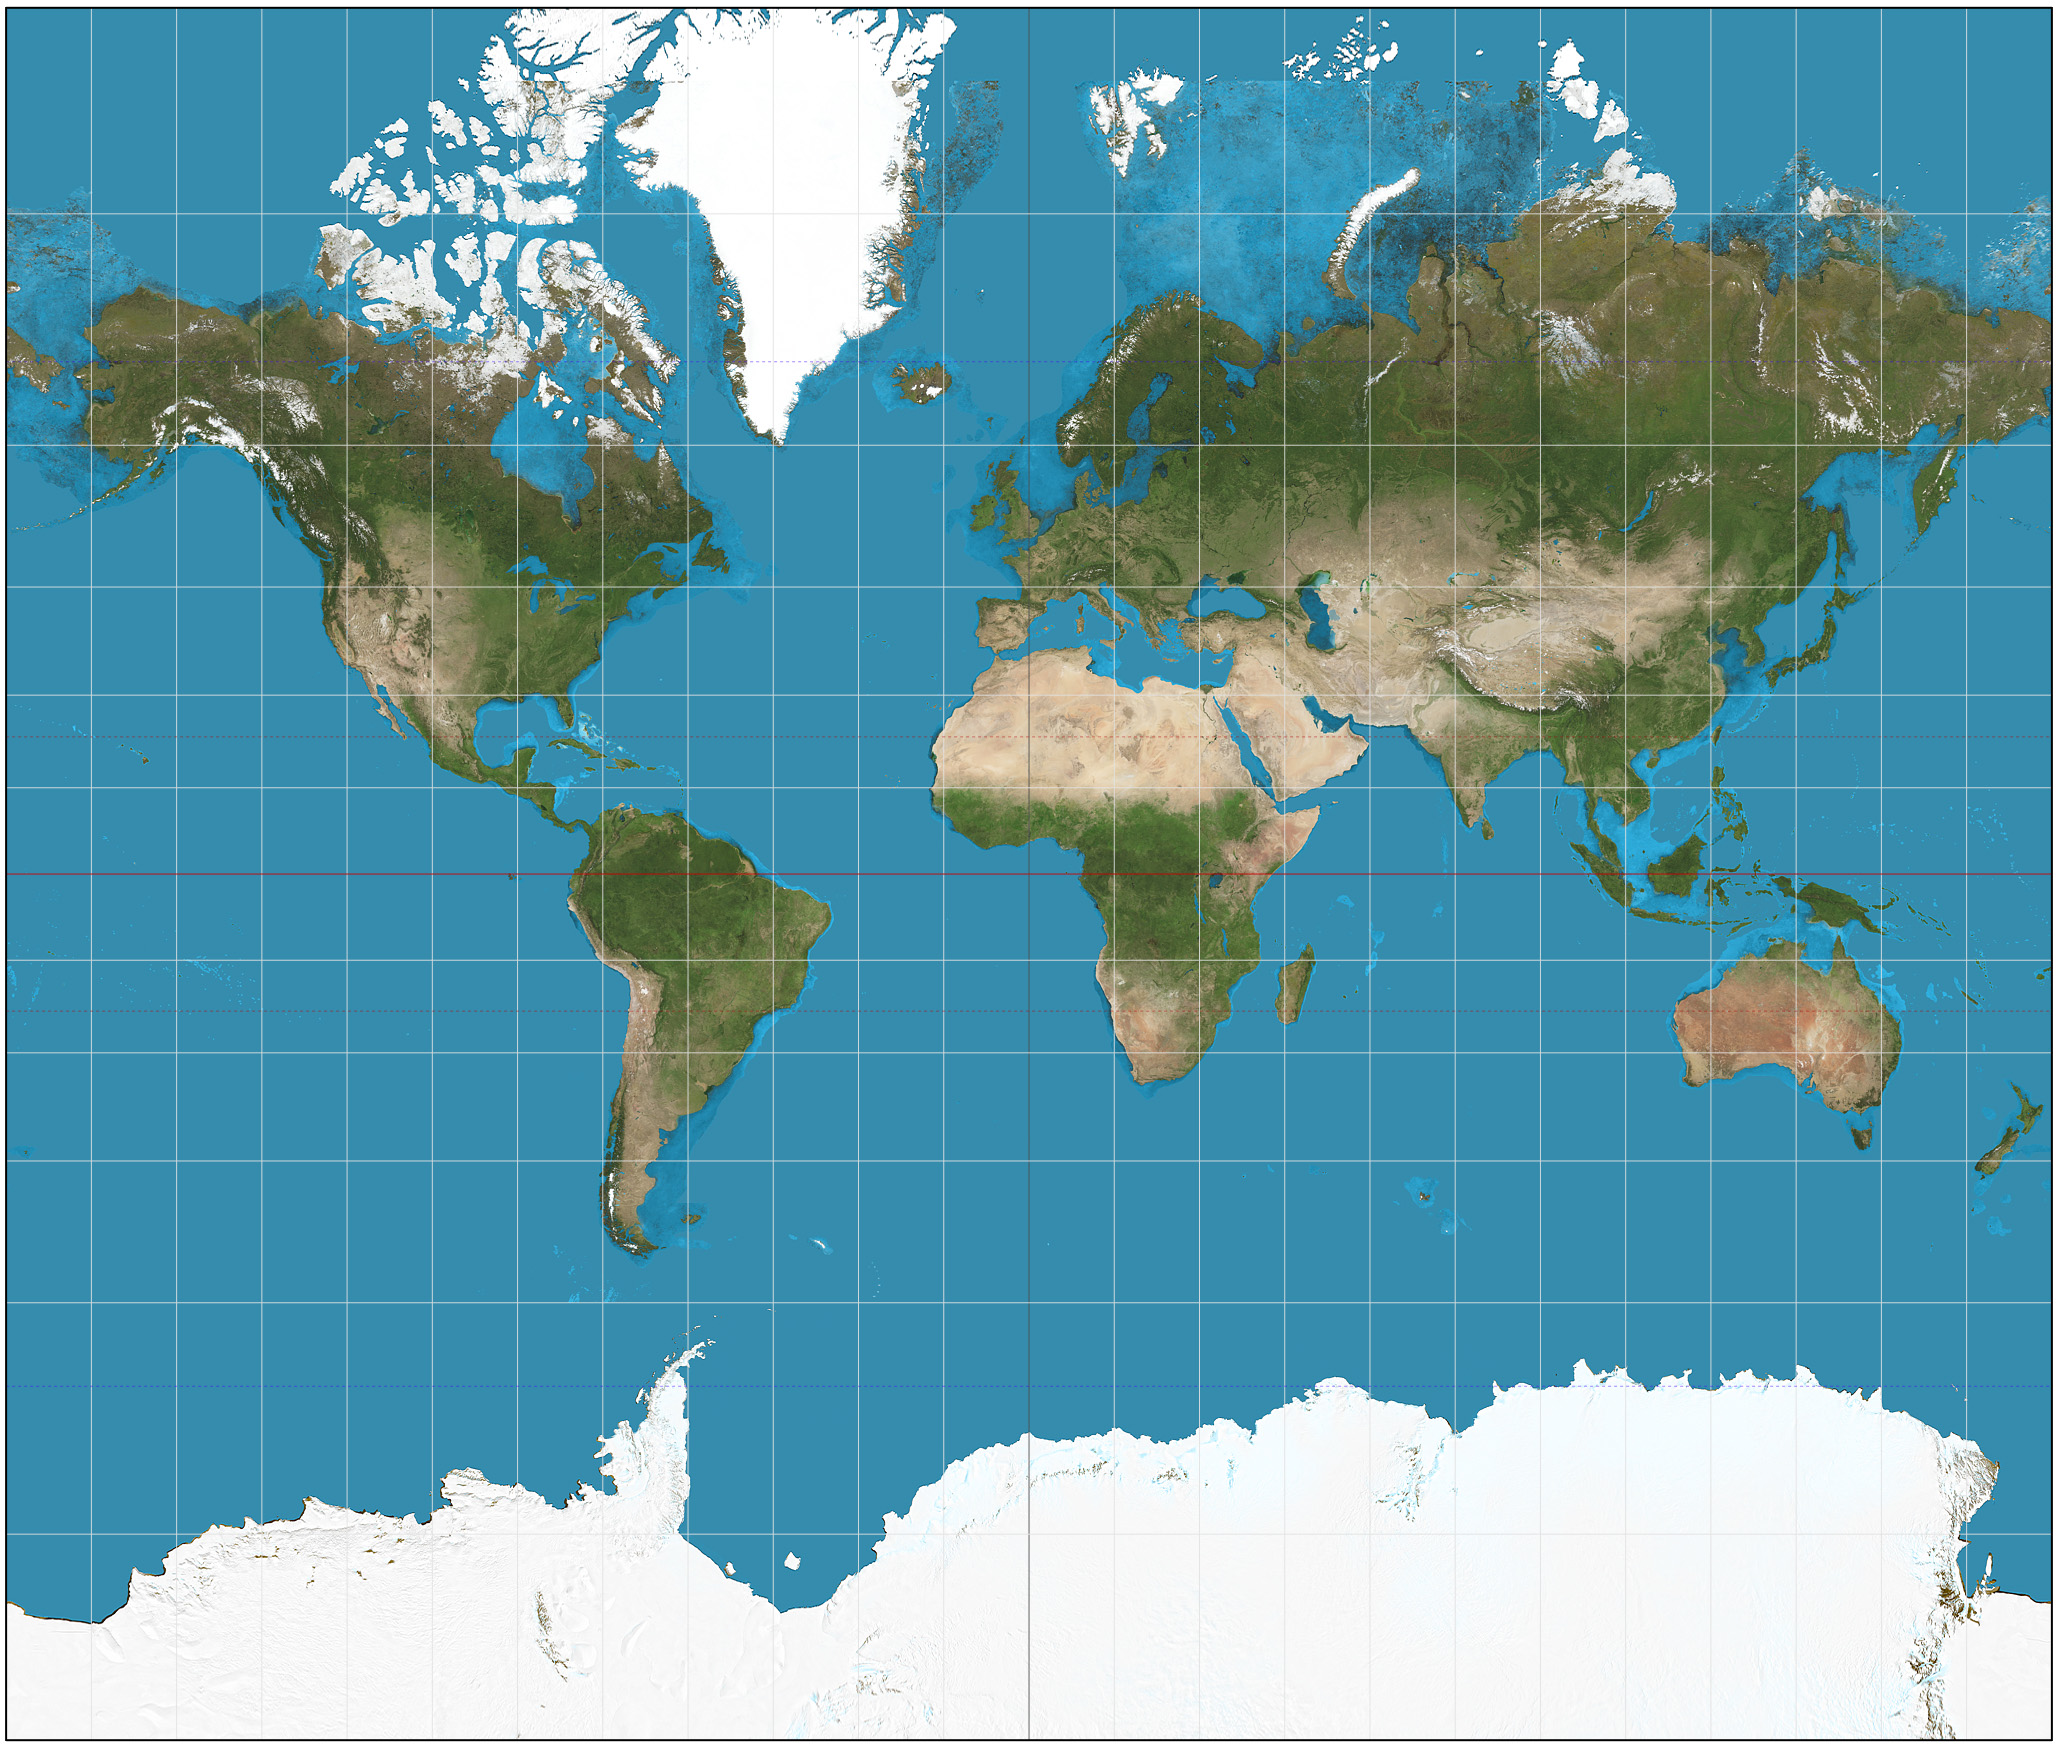 Mercator projection wikipedia mercator projection of the world between 82s and 82n gumiabroncs Images